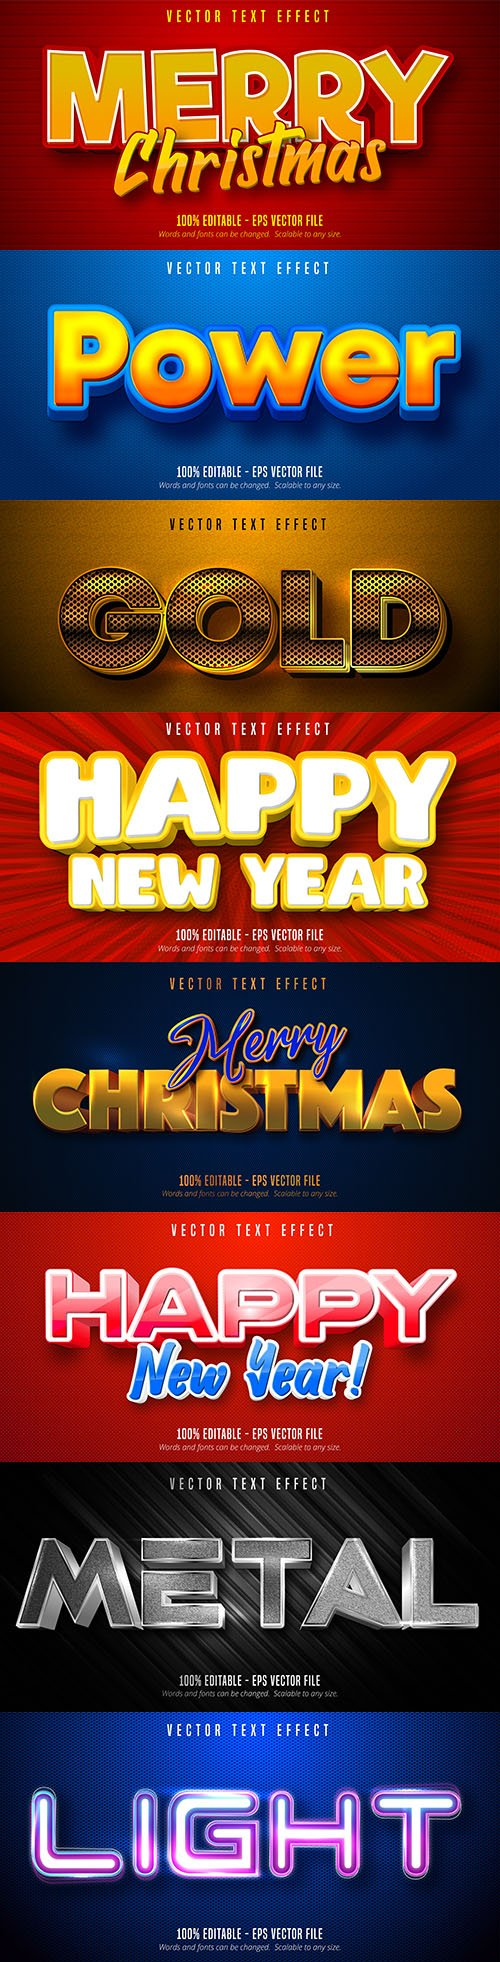 Merry Christmas editable font effect text collection illustration design 2